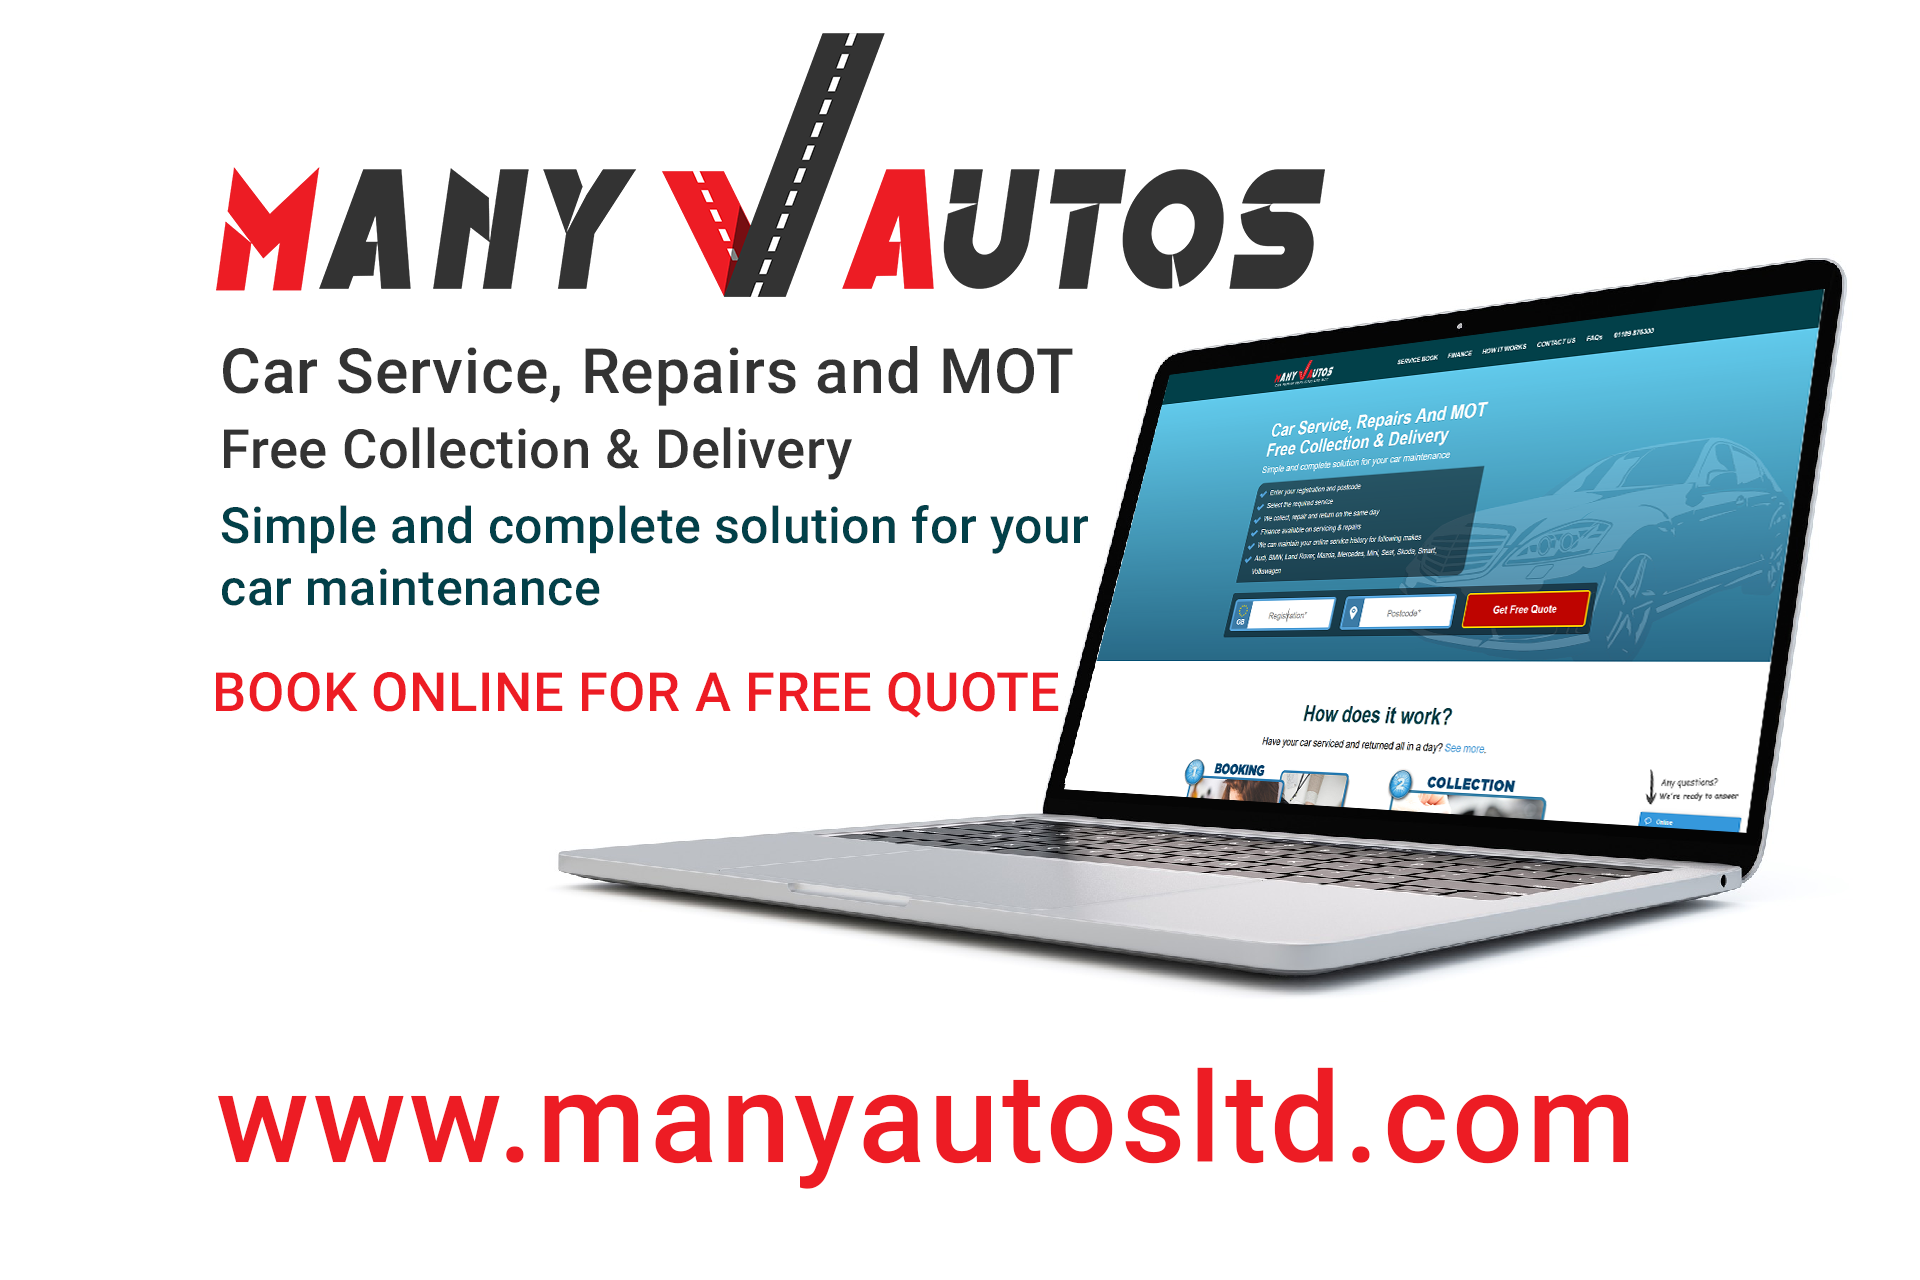 Many Autos is a simple and complete solution for your car